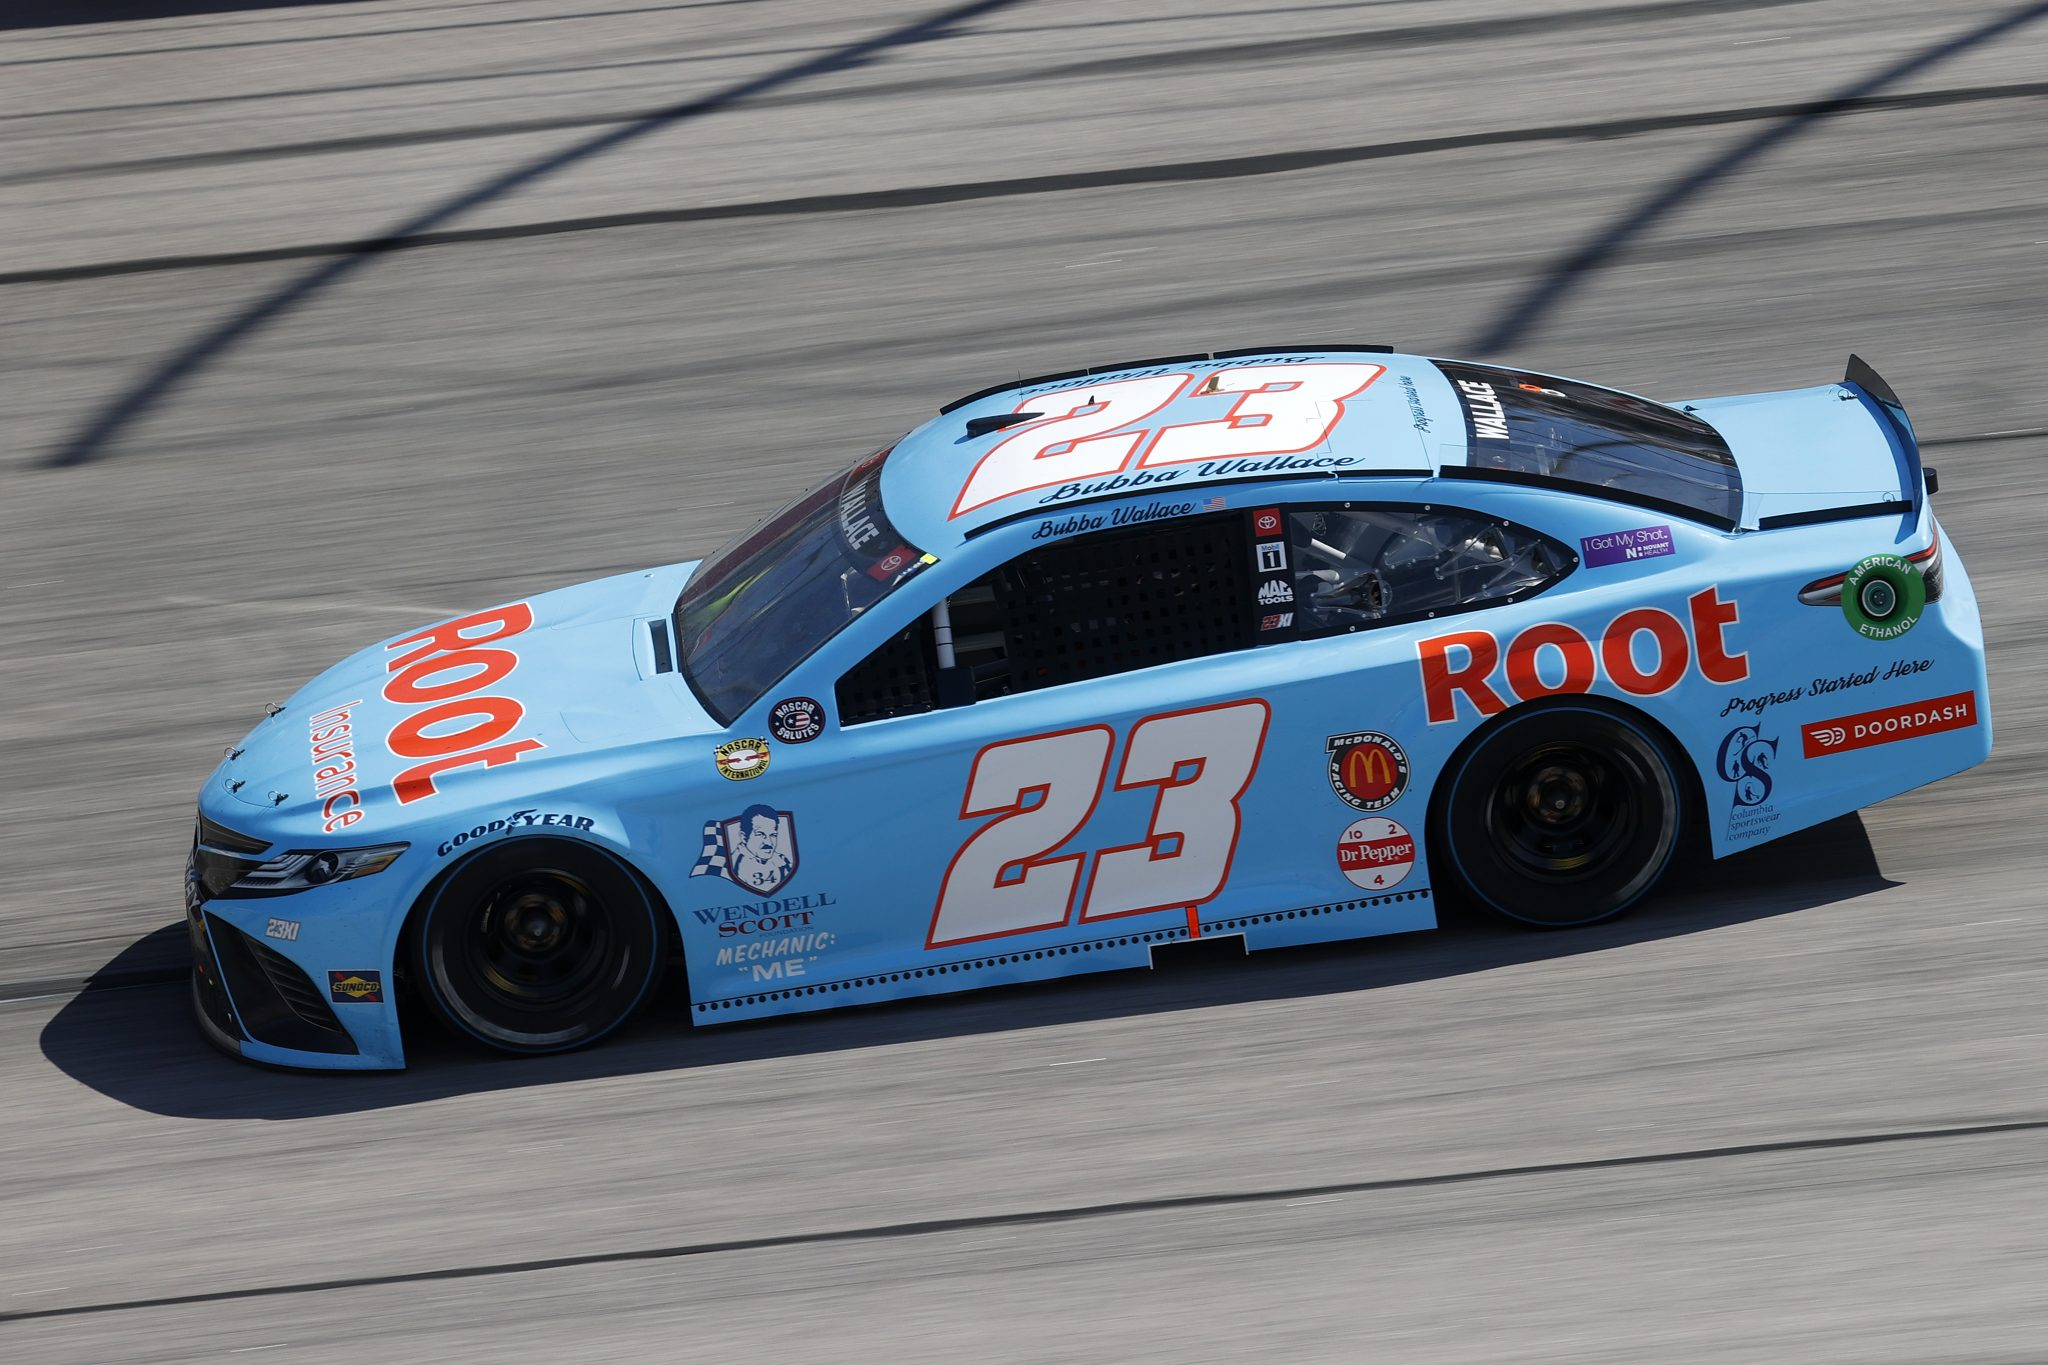 DARLINGTON, SOUTH CAROLINA - MAY 09: Bubba Wallace, driver of the #23 Root Insurance Toyota, drives during the NASCAR Cup Series Goodyear 400 at Darlington Raceway on May 09, 2021 in Darlington, South Carolina. (Photo by Chris Graythen/Getty Images) | Getty Images